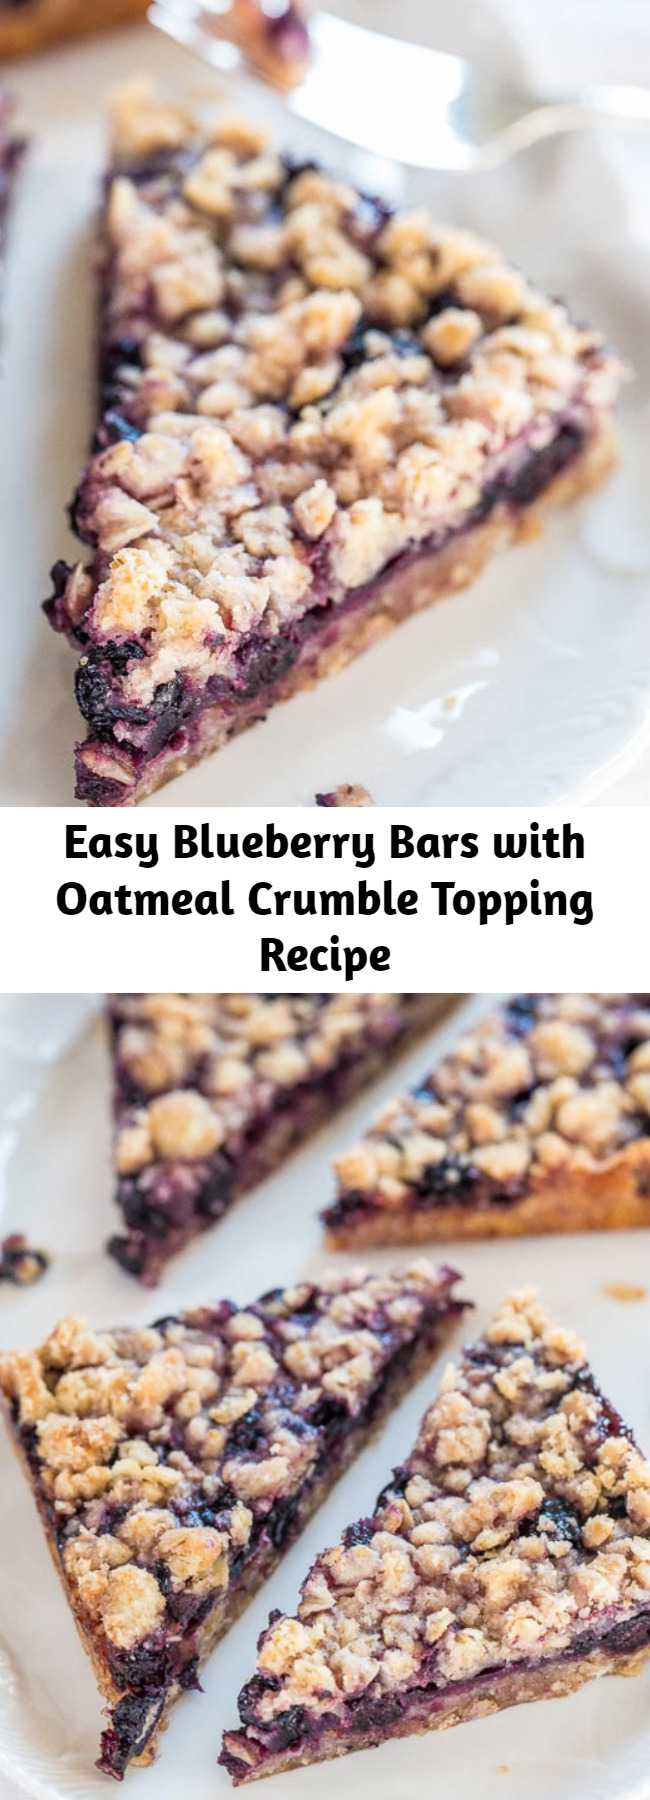 Easy Blueberry Bars with Oatmeal Crumble Topping Recipe - These bars are buttery and packed with blueberry flavor! They take just 10 minutes of prep and then go straight into the oven. So easy to make, and a crowd pleaser every time!